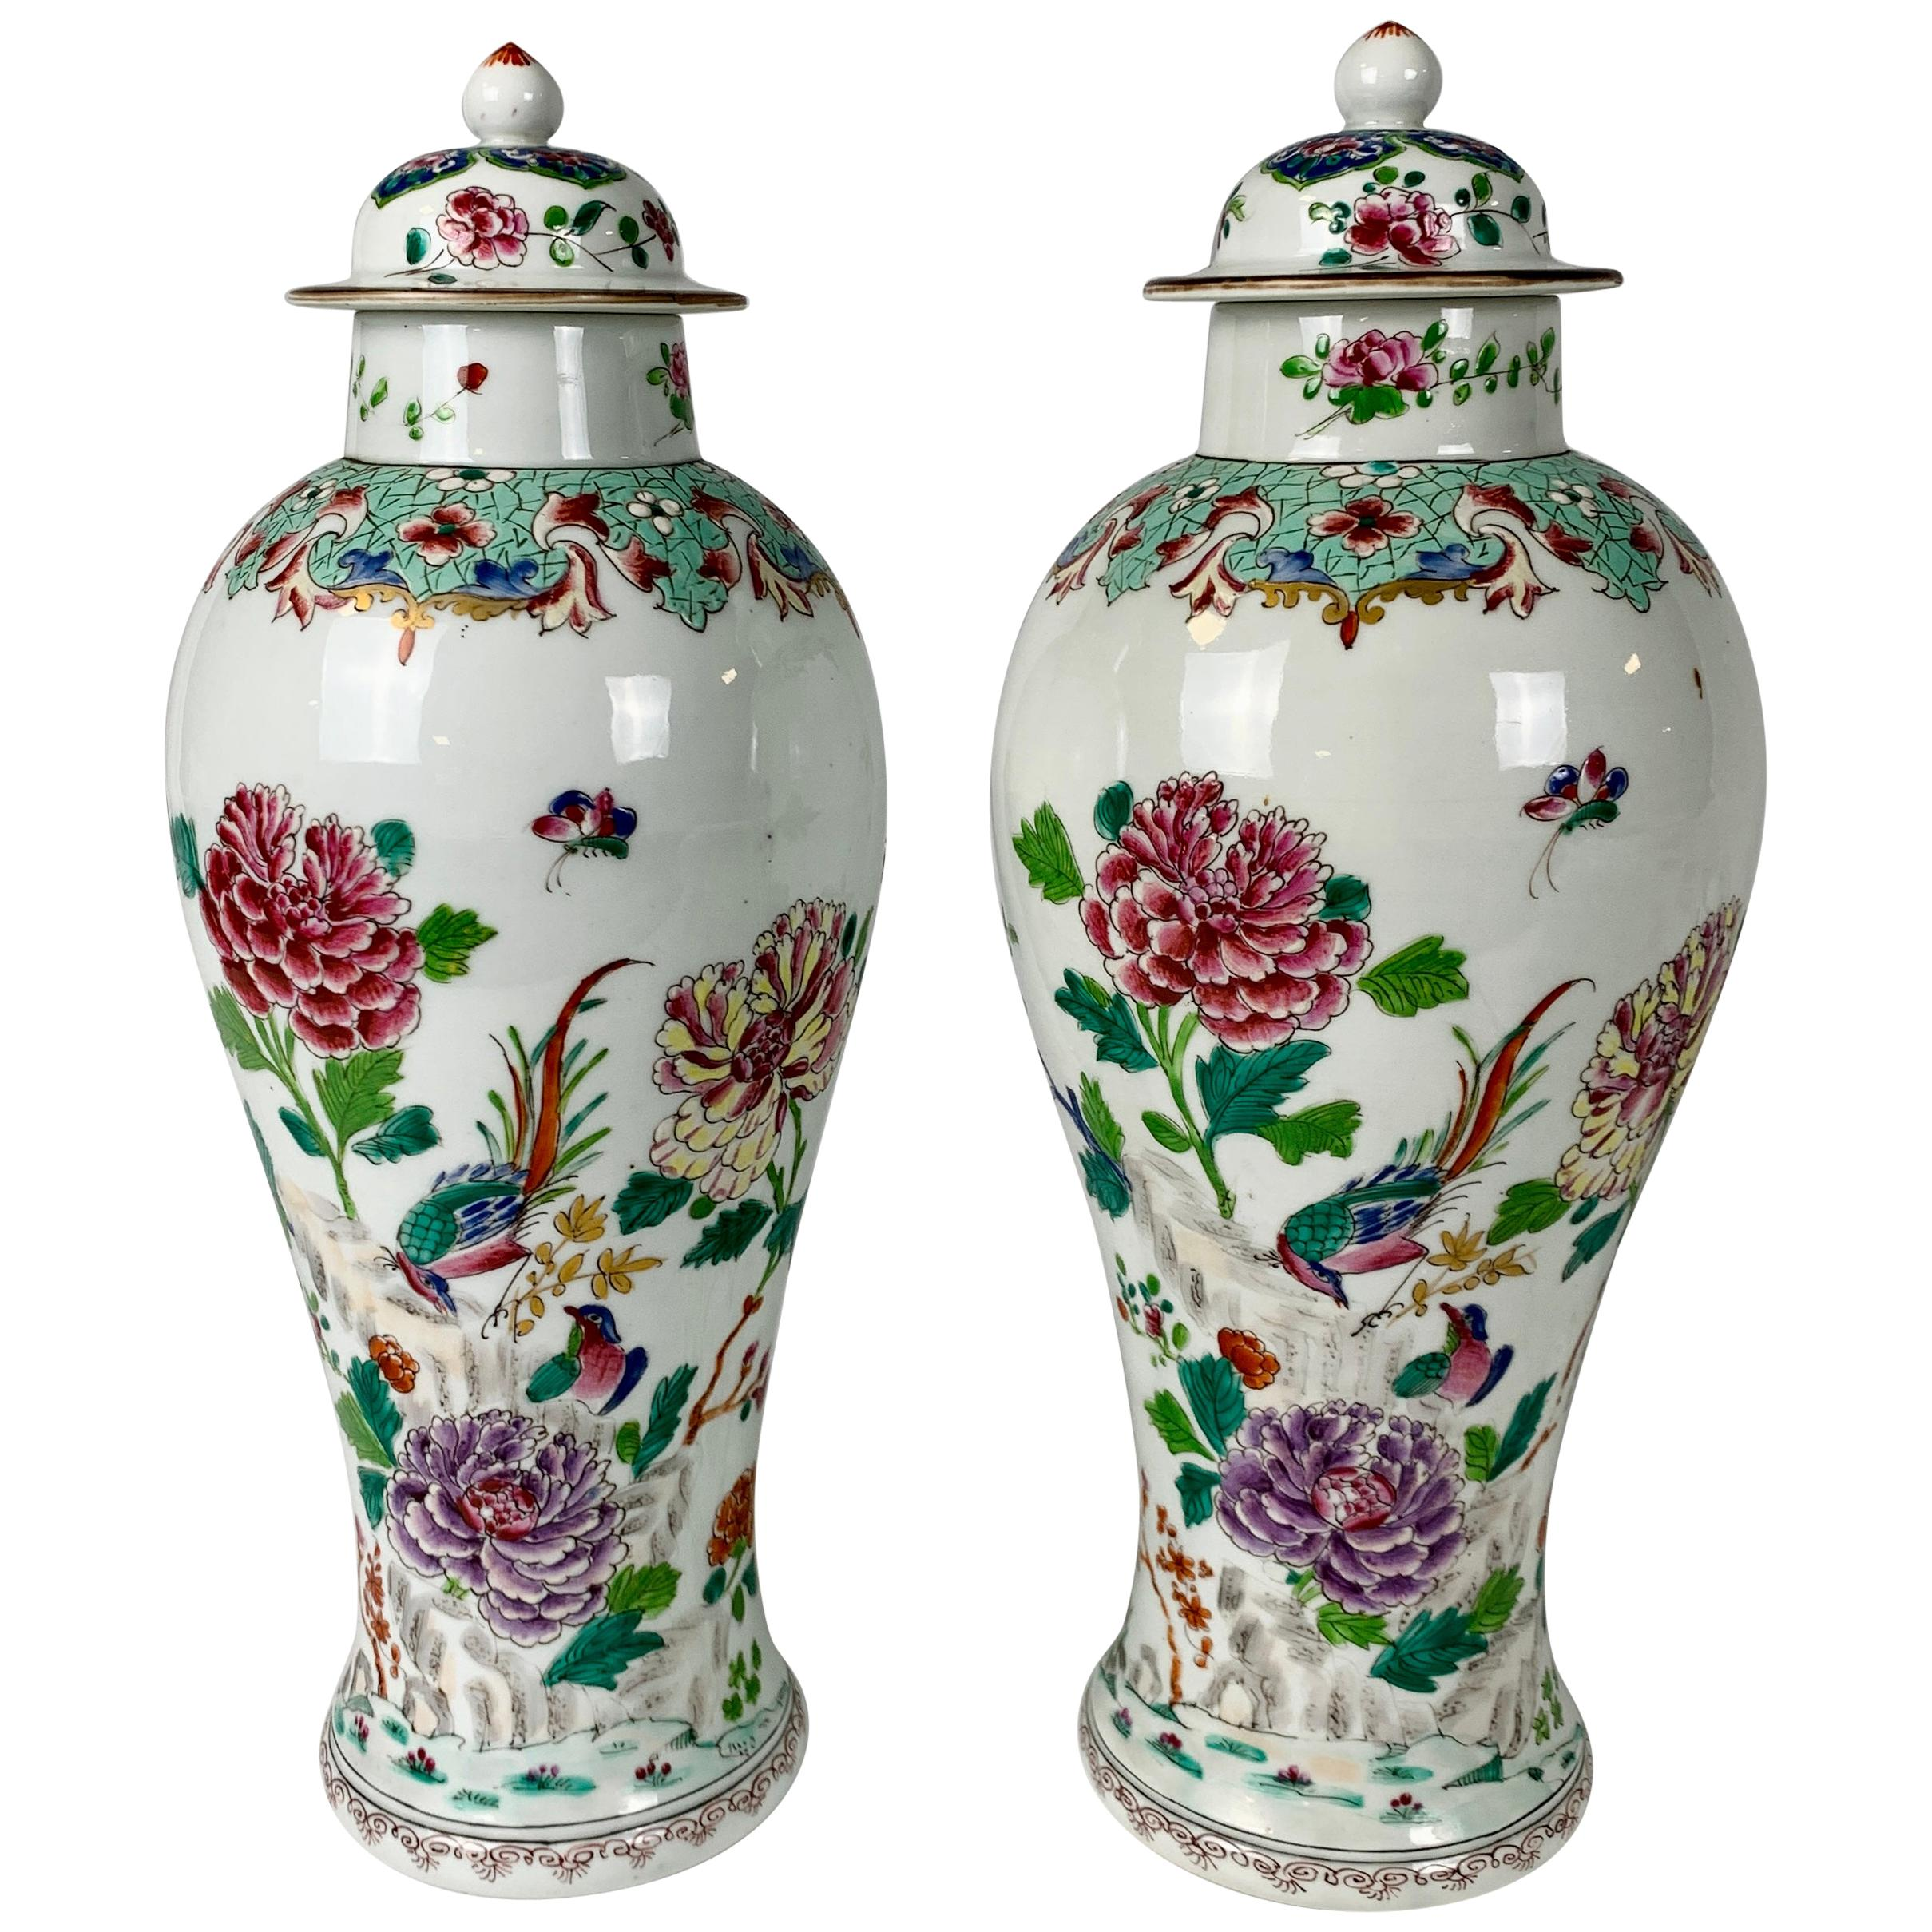 Pair of Chinese Hand-Painted Porcelain Mantle Vases in the Famille Rose Palette